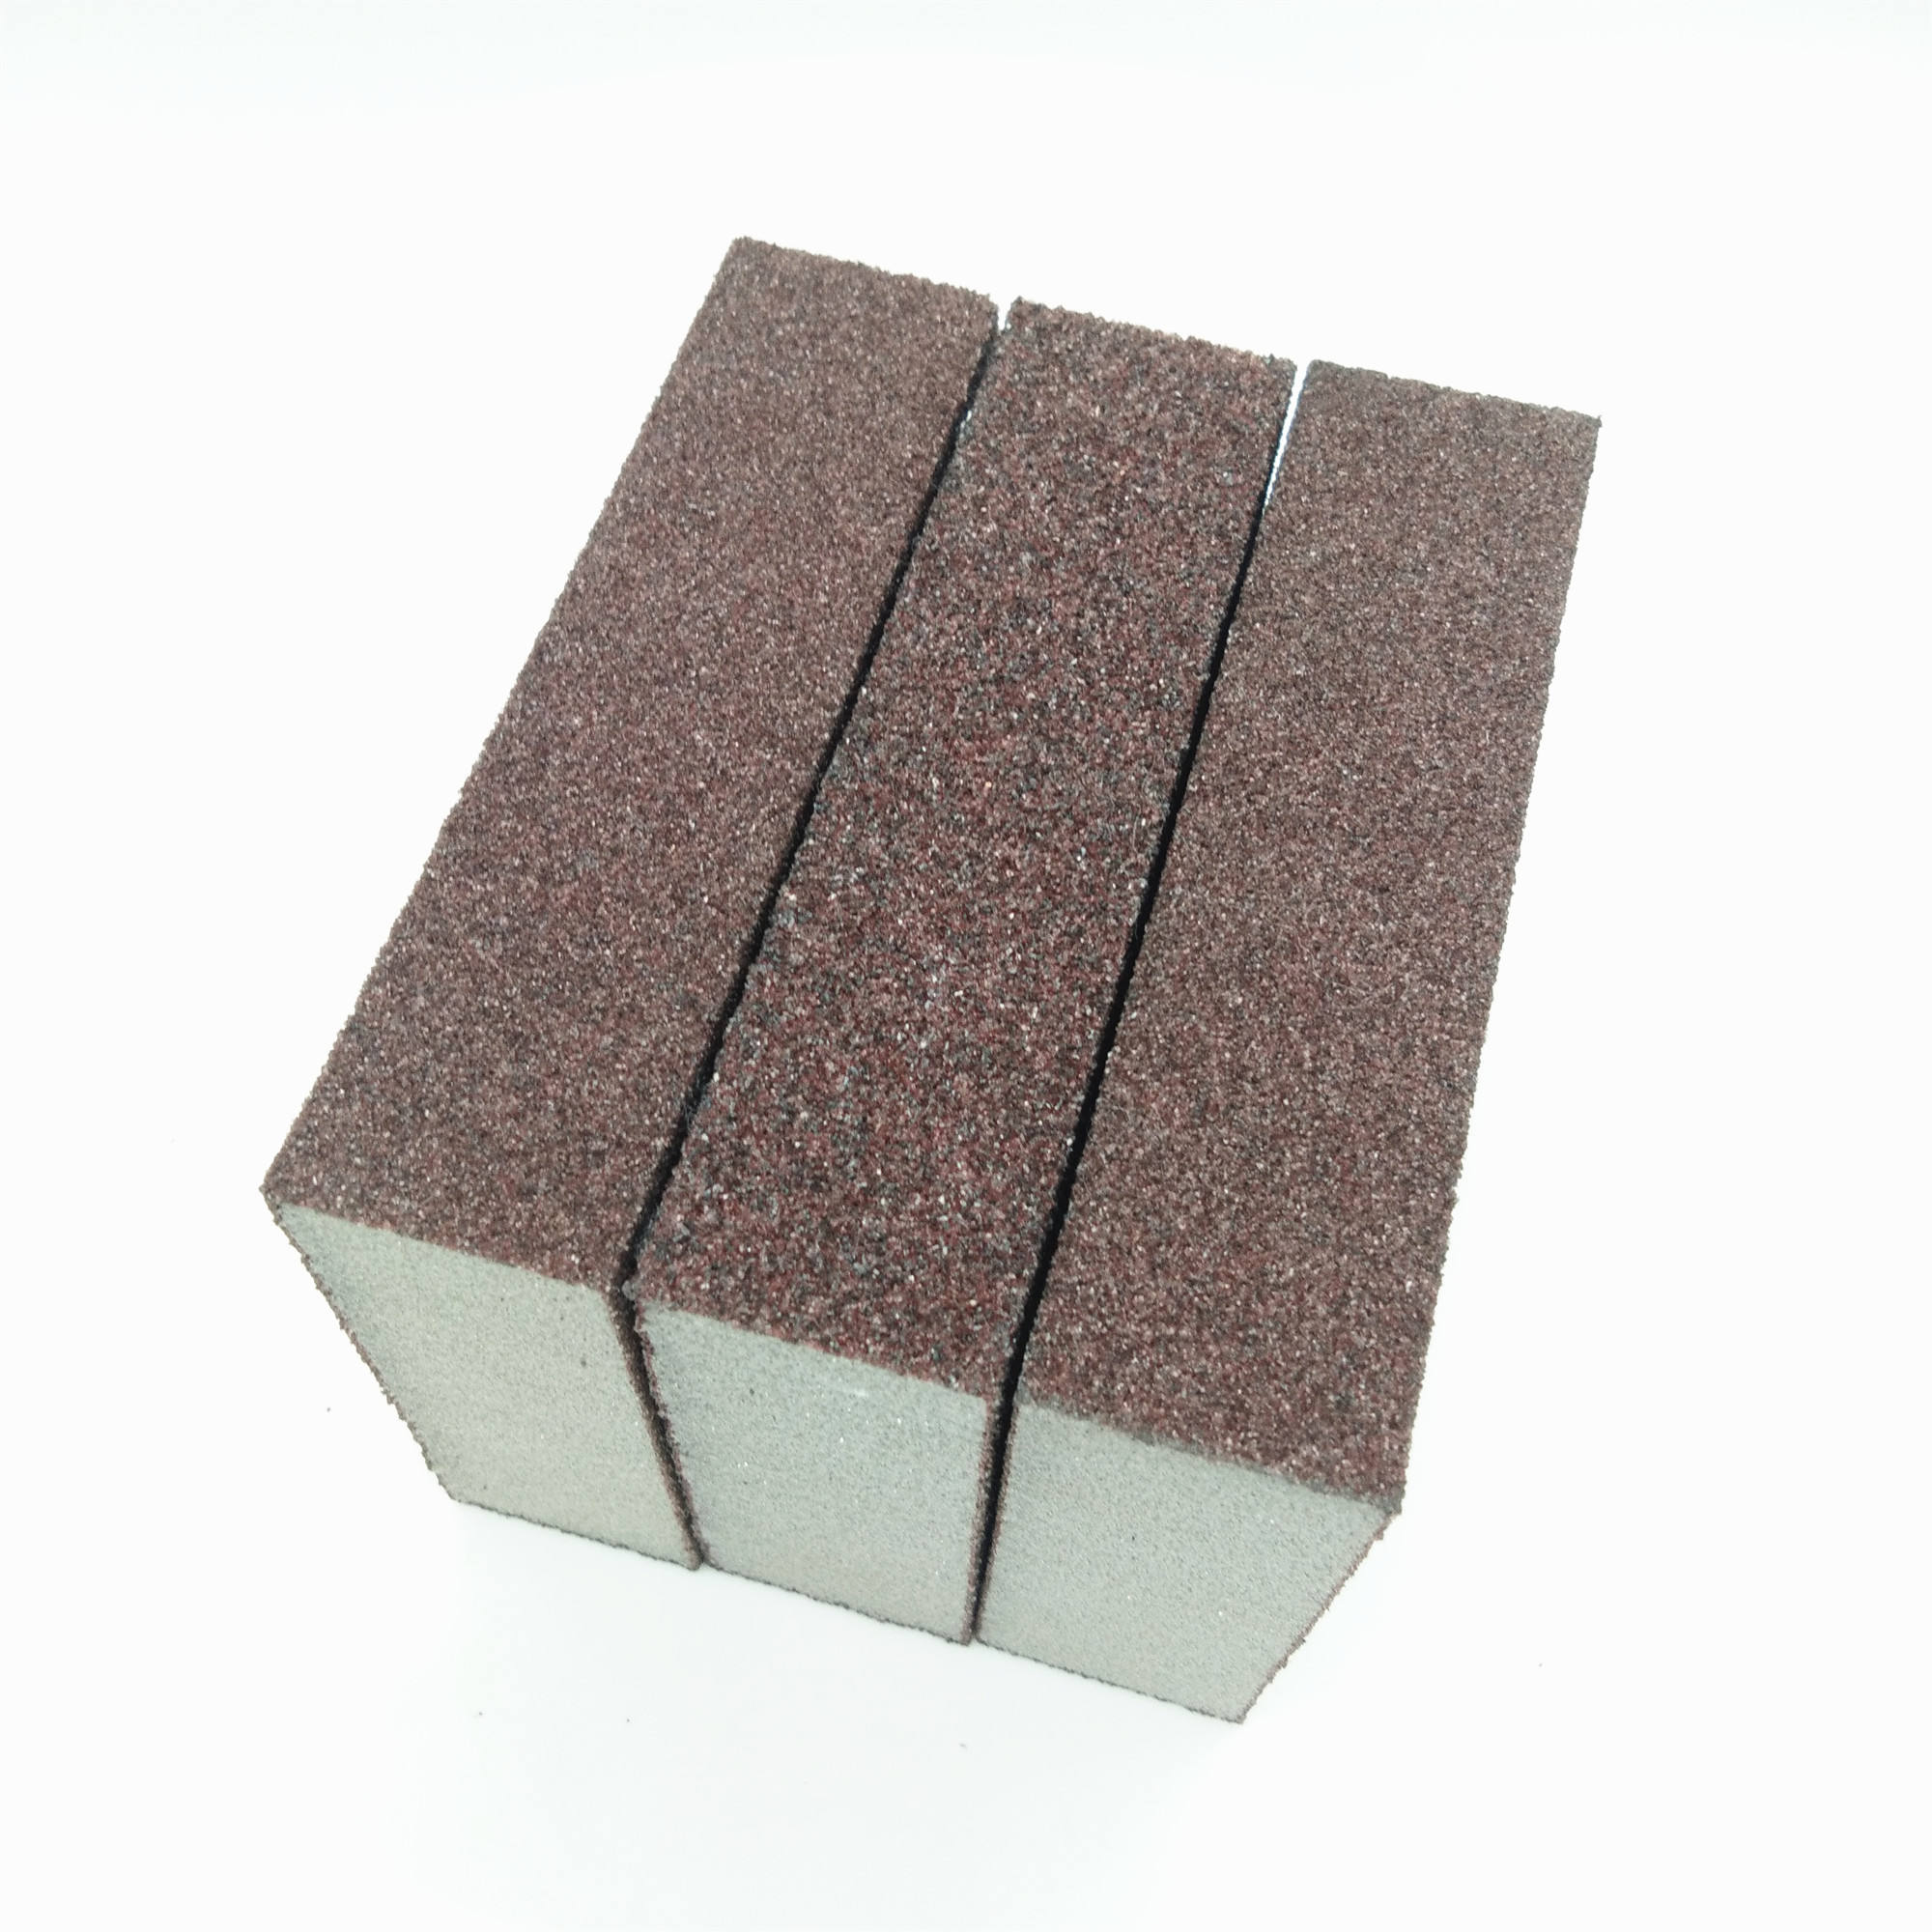 sharpness high density 100x70x25mm aluminium oxide abrasive sanding sponge